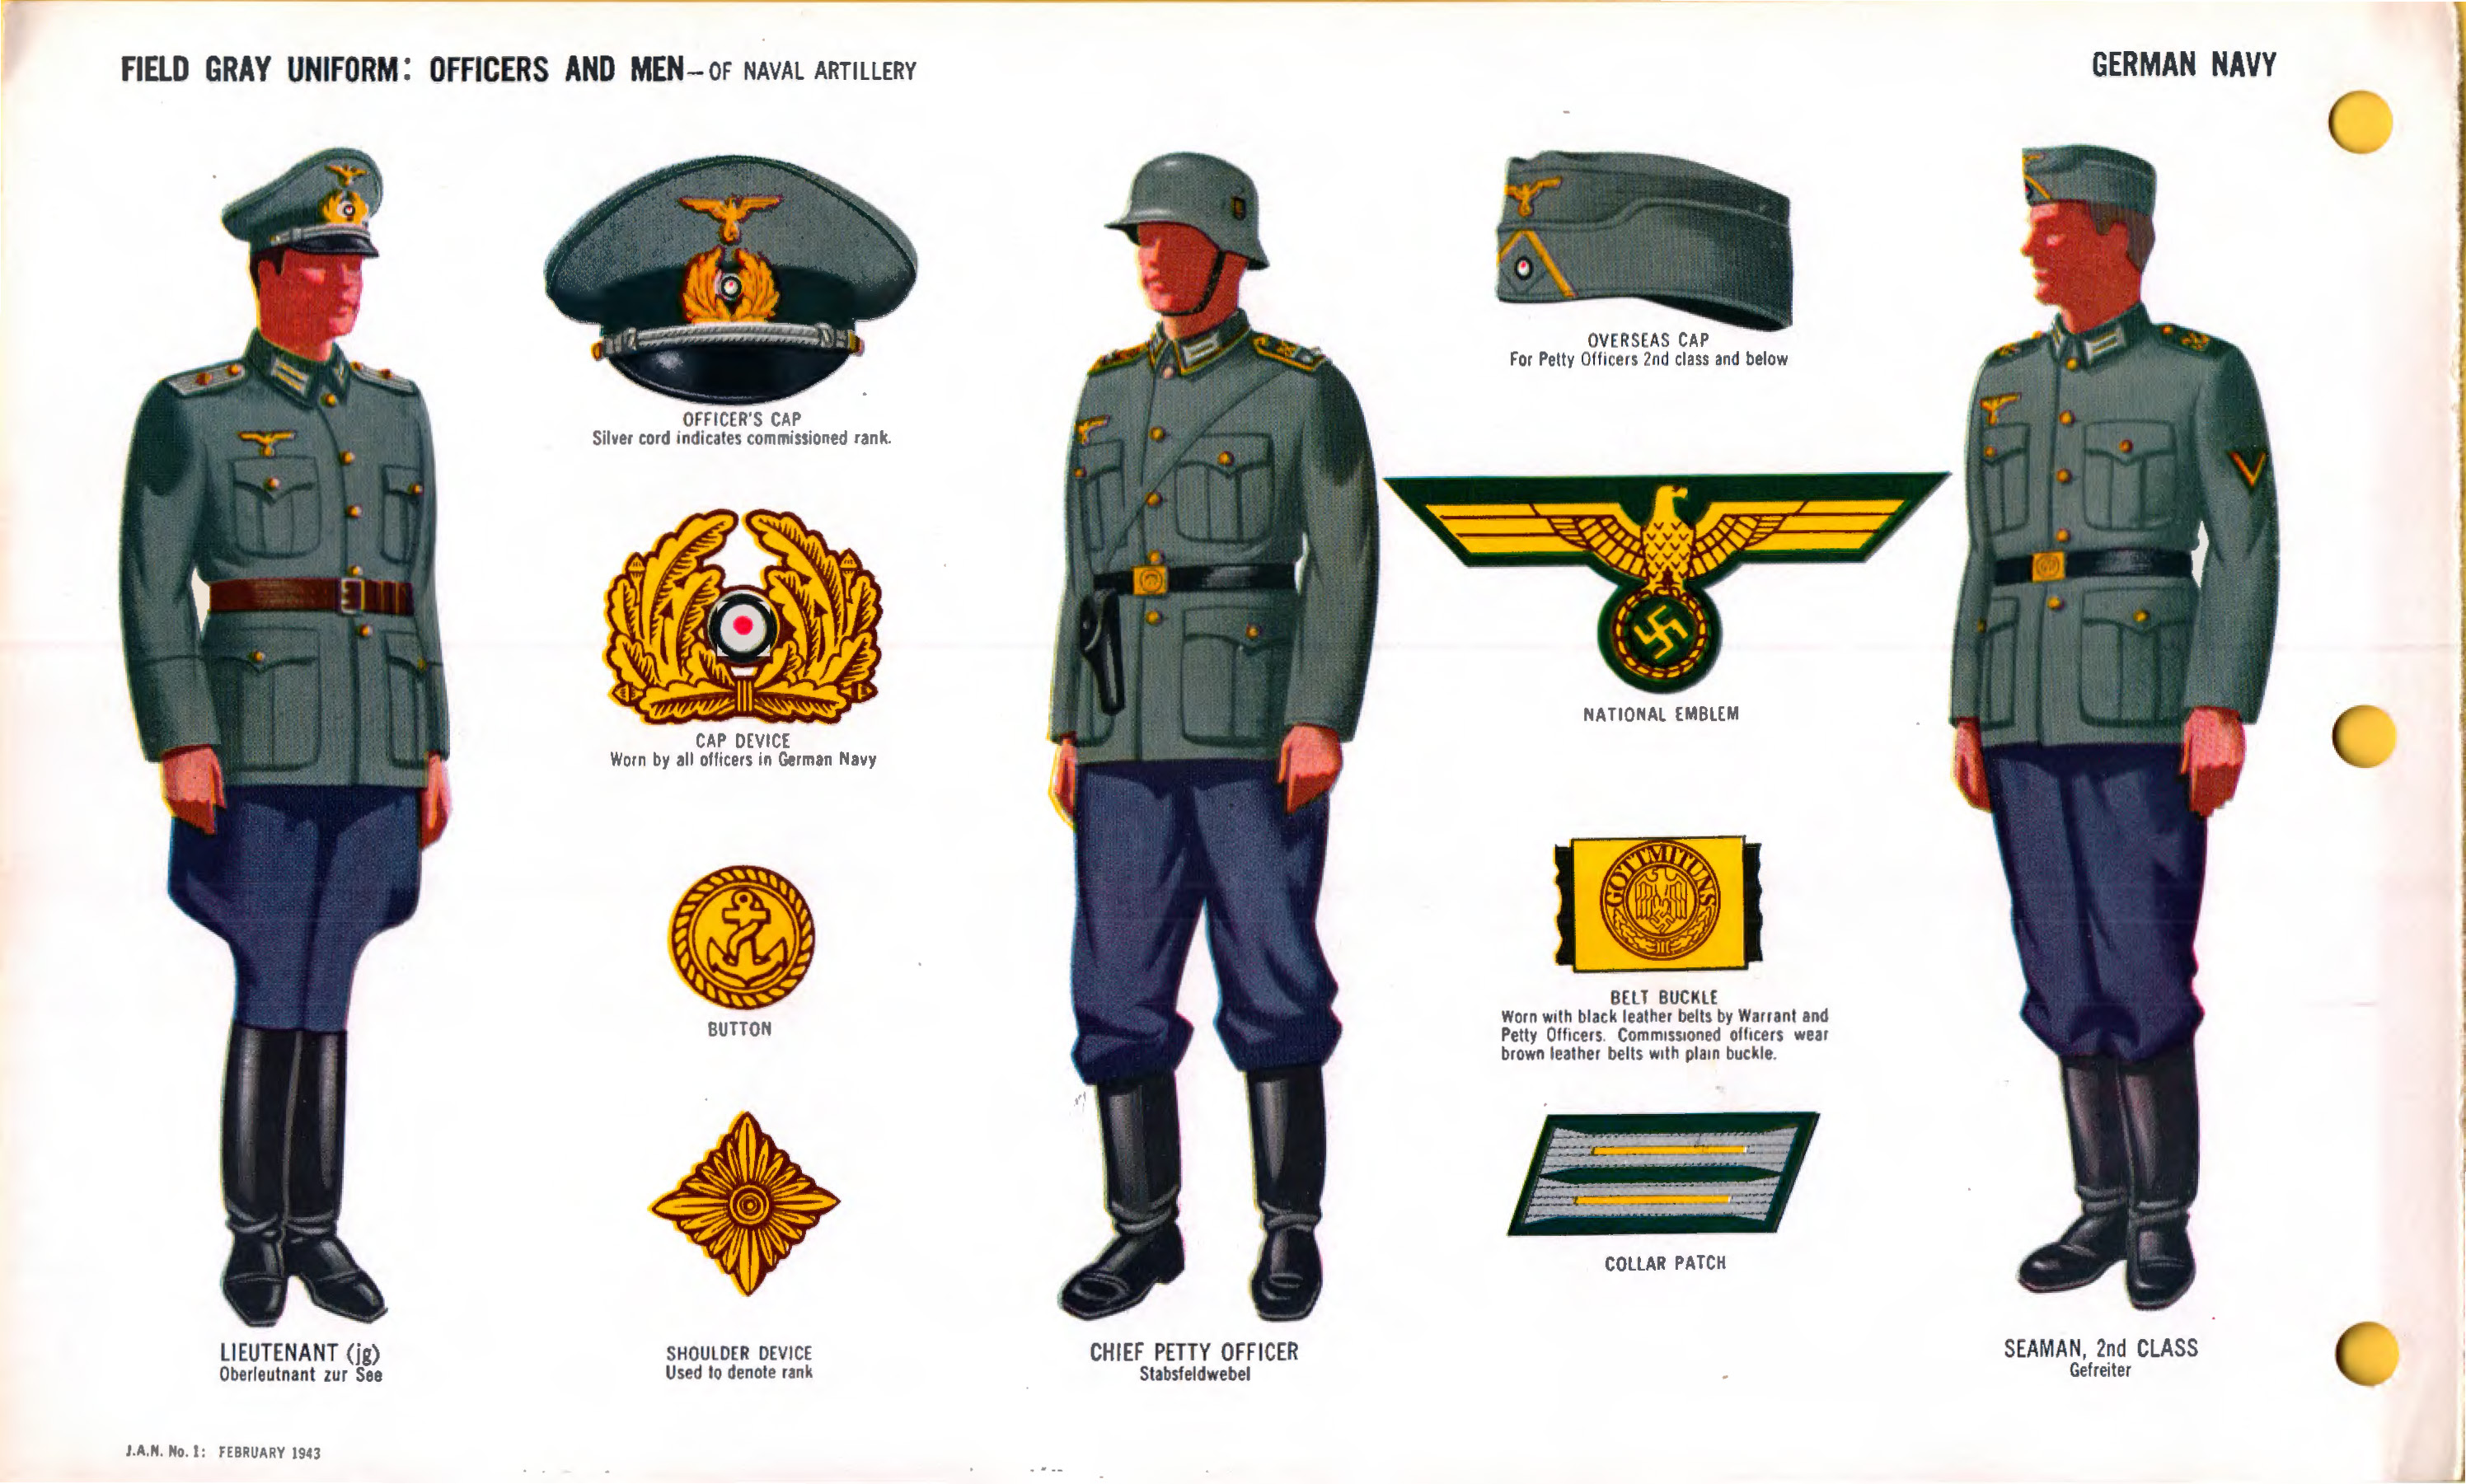 File Oni Jan 1 Uniforms And Insignia Page 023 German Navy